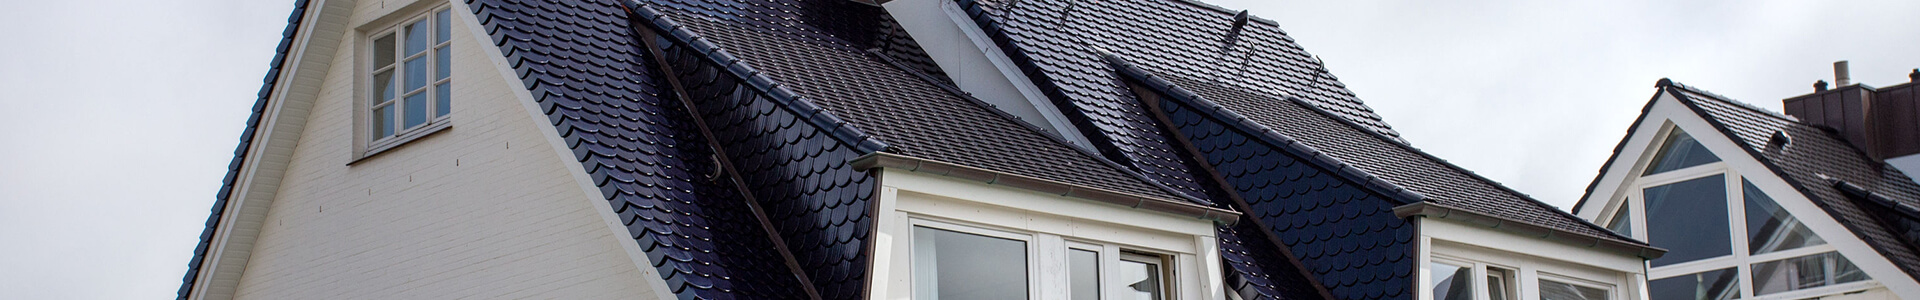 Pitched roofs luton